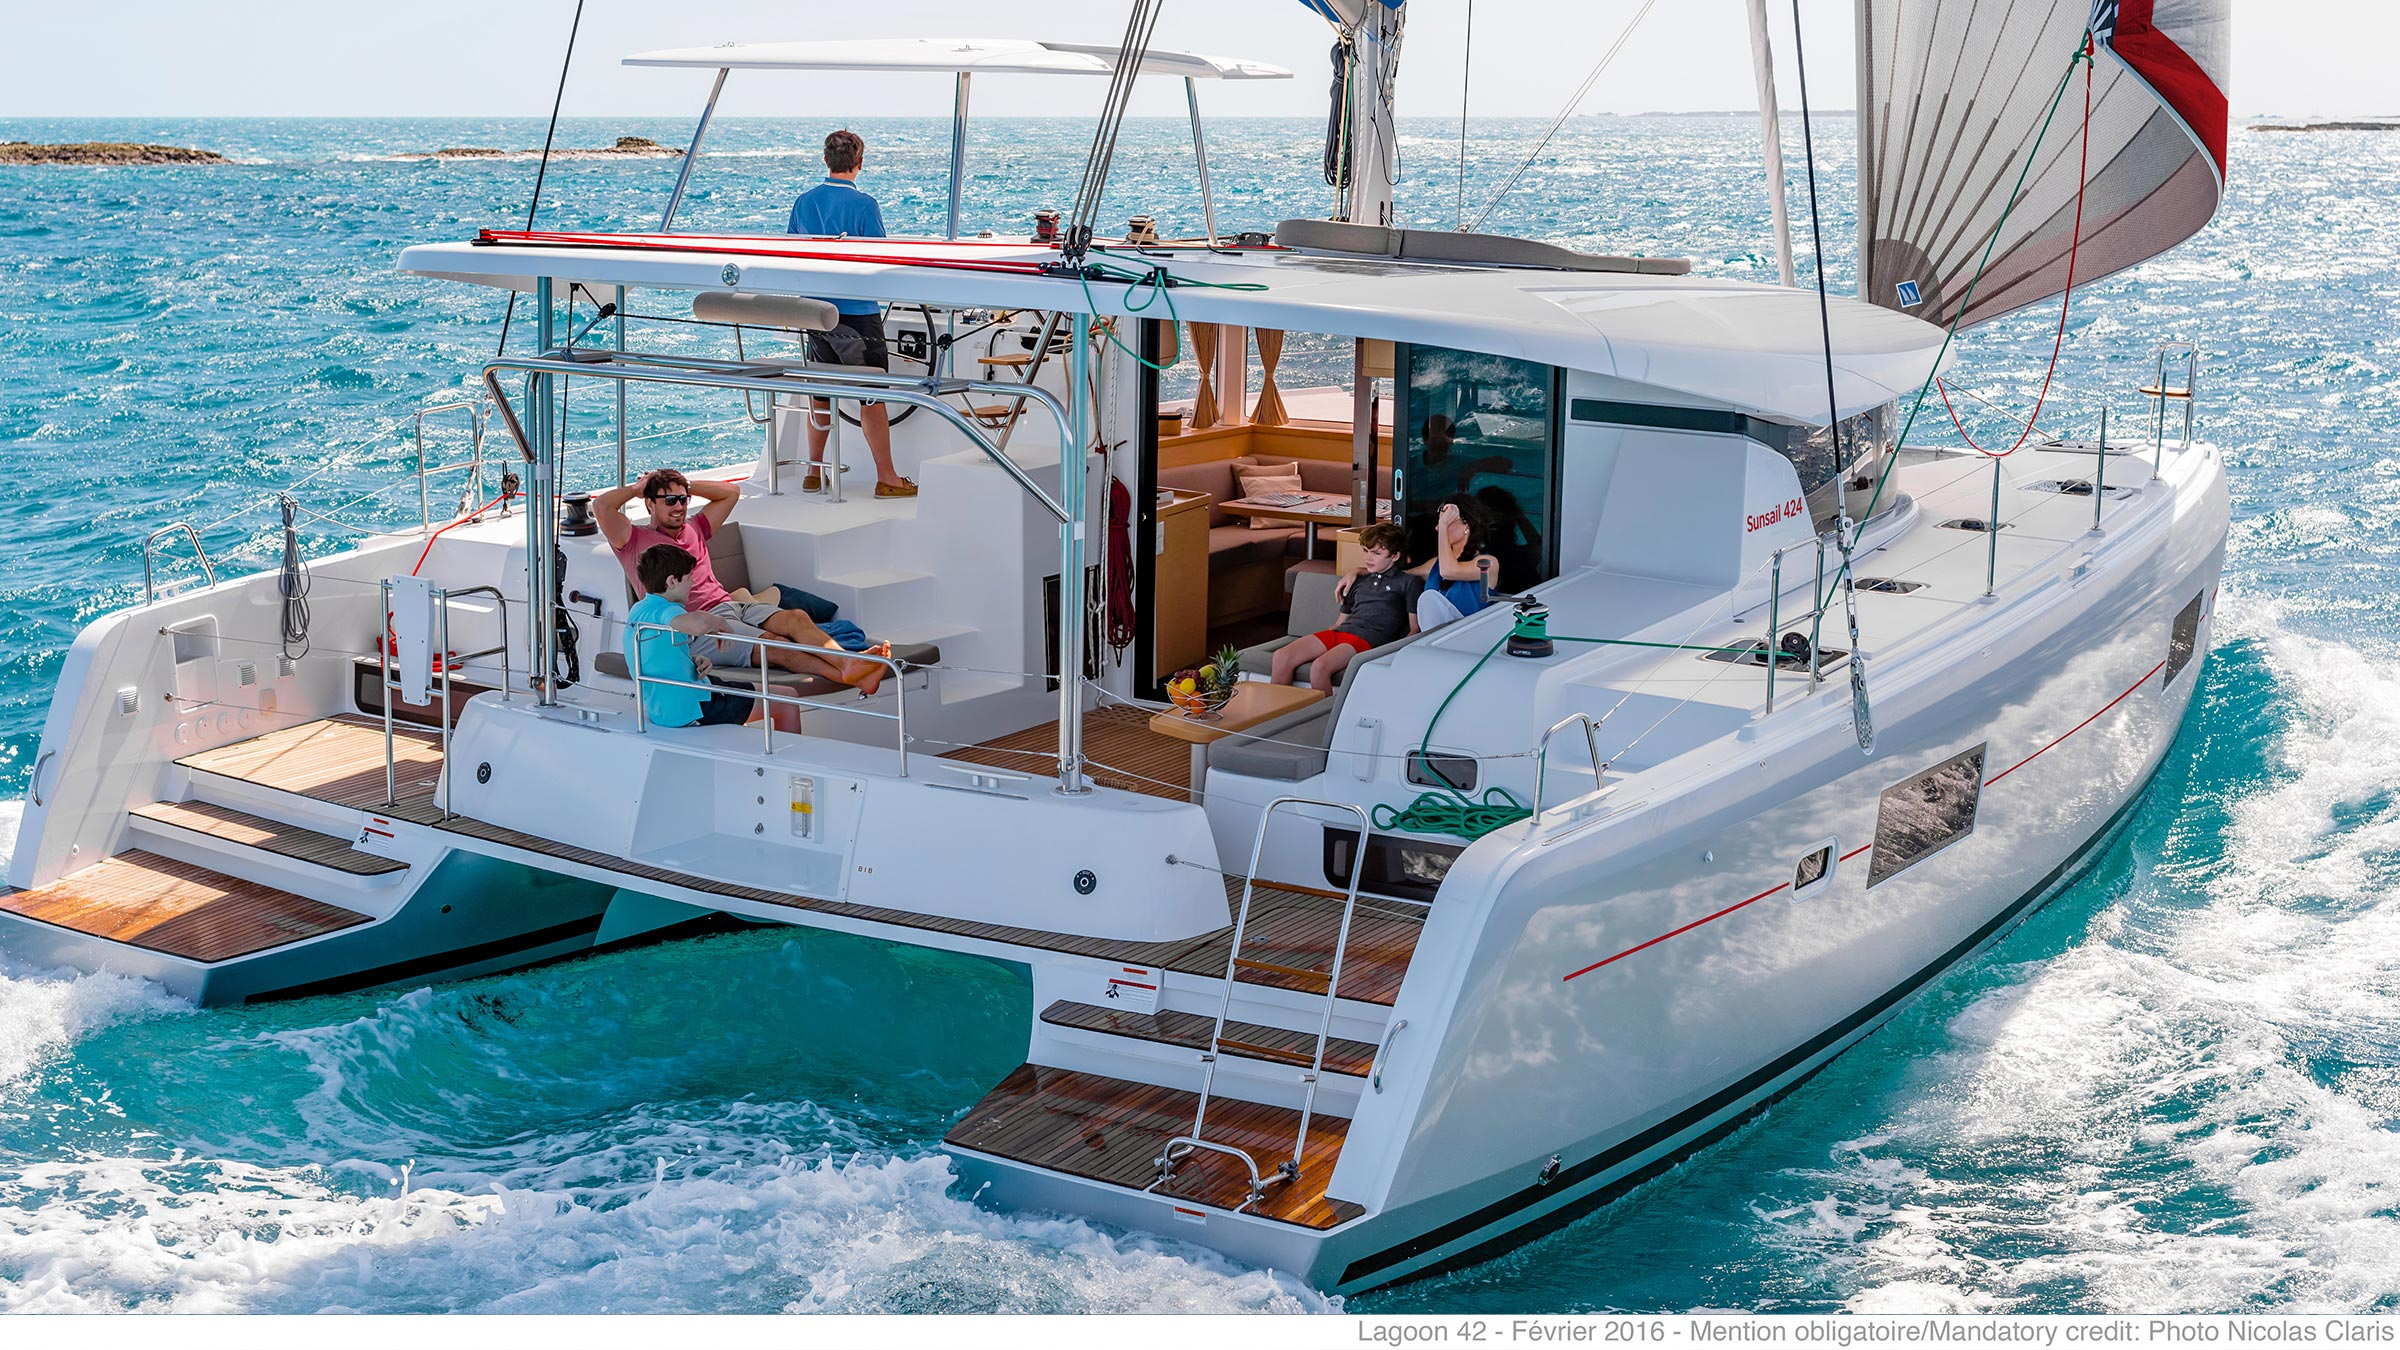 New-Sunsail-424-Lagoon-4-cabin-4-head-Rebrand-images_2